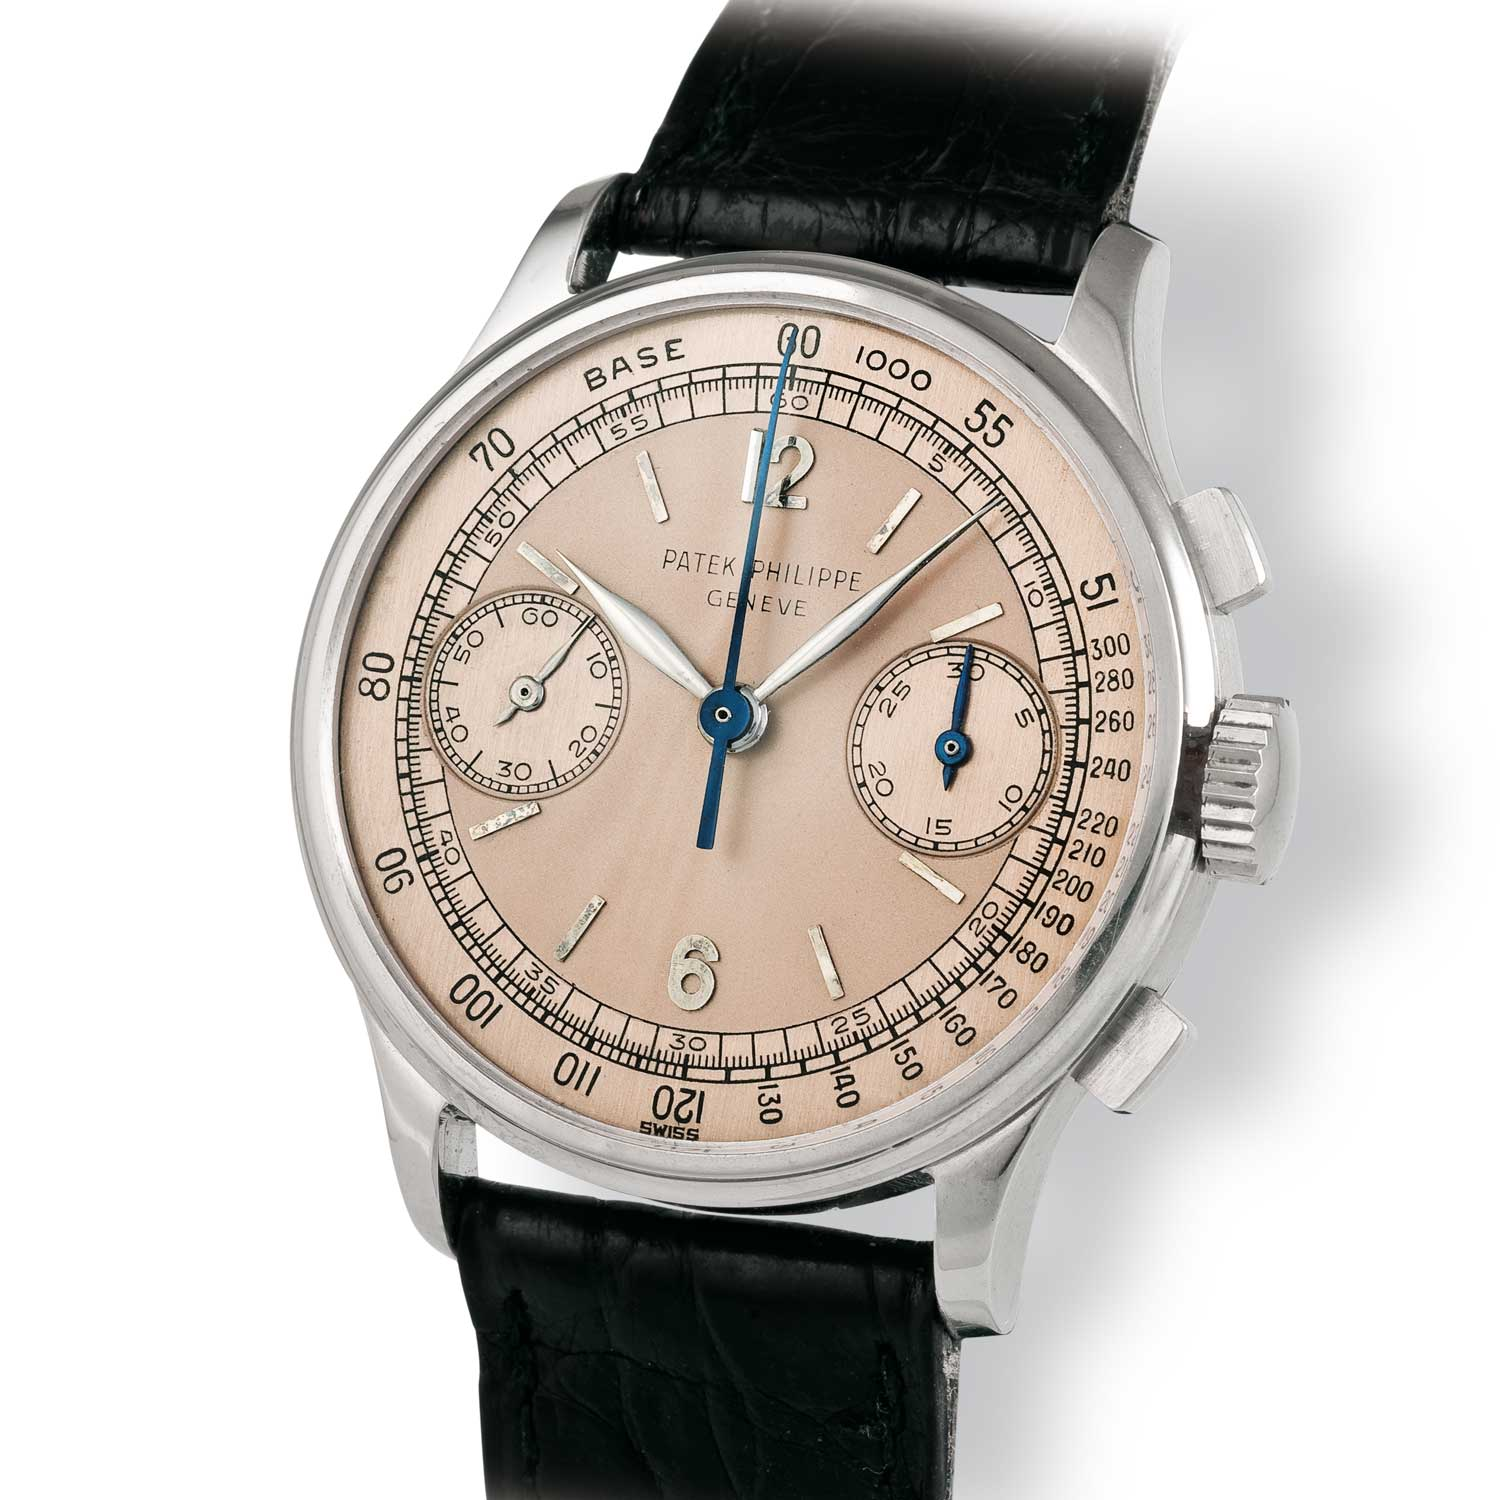 Patek Philippe ref. 130 steel chronograph with salmon/pink dial (Image: John Goldberger)